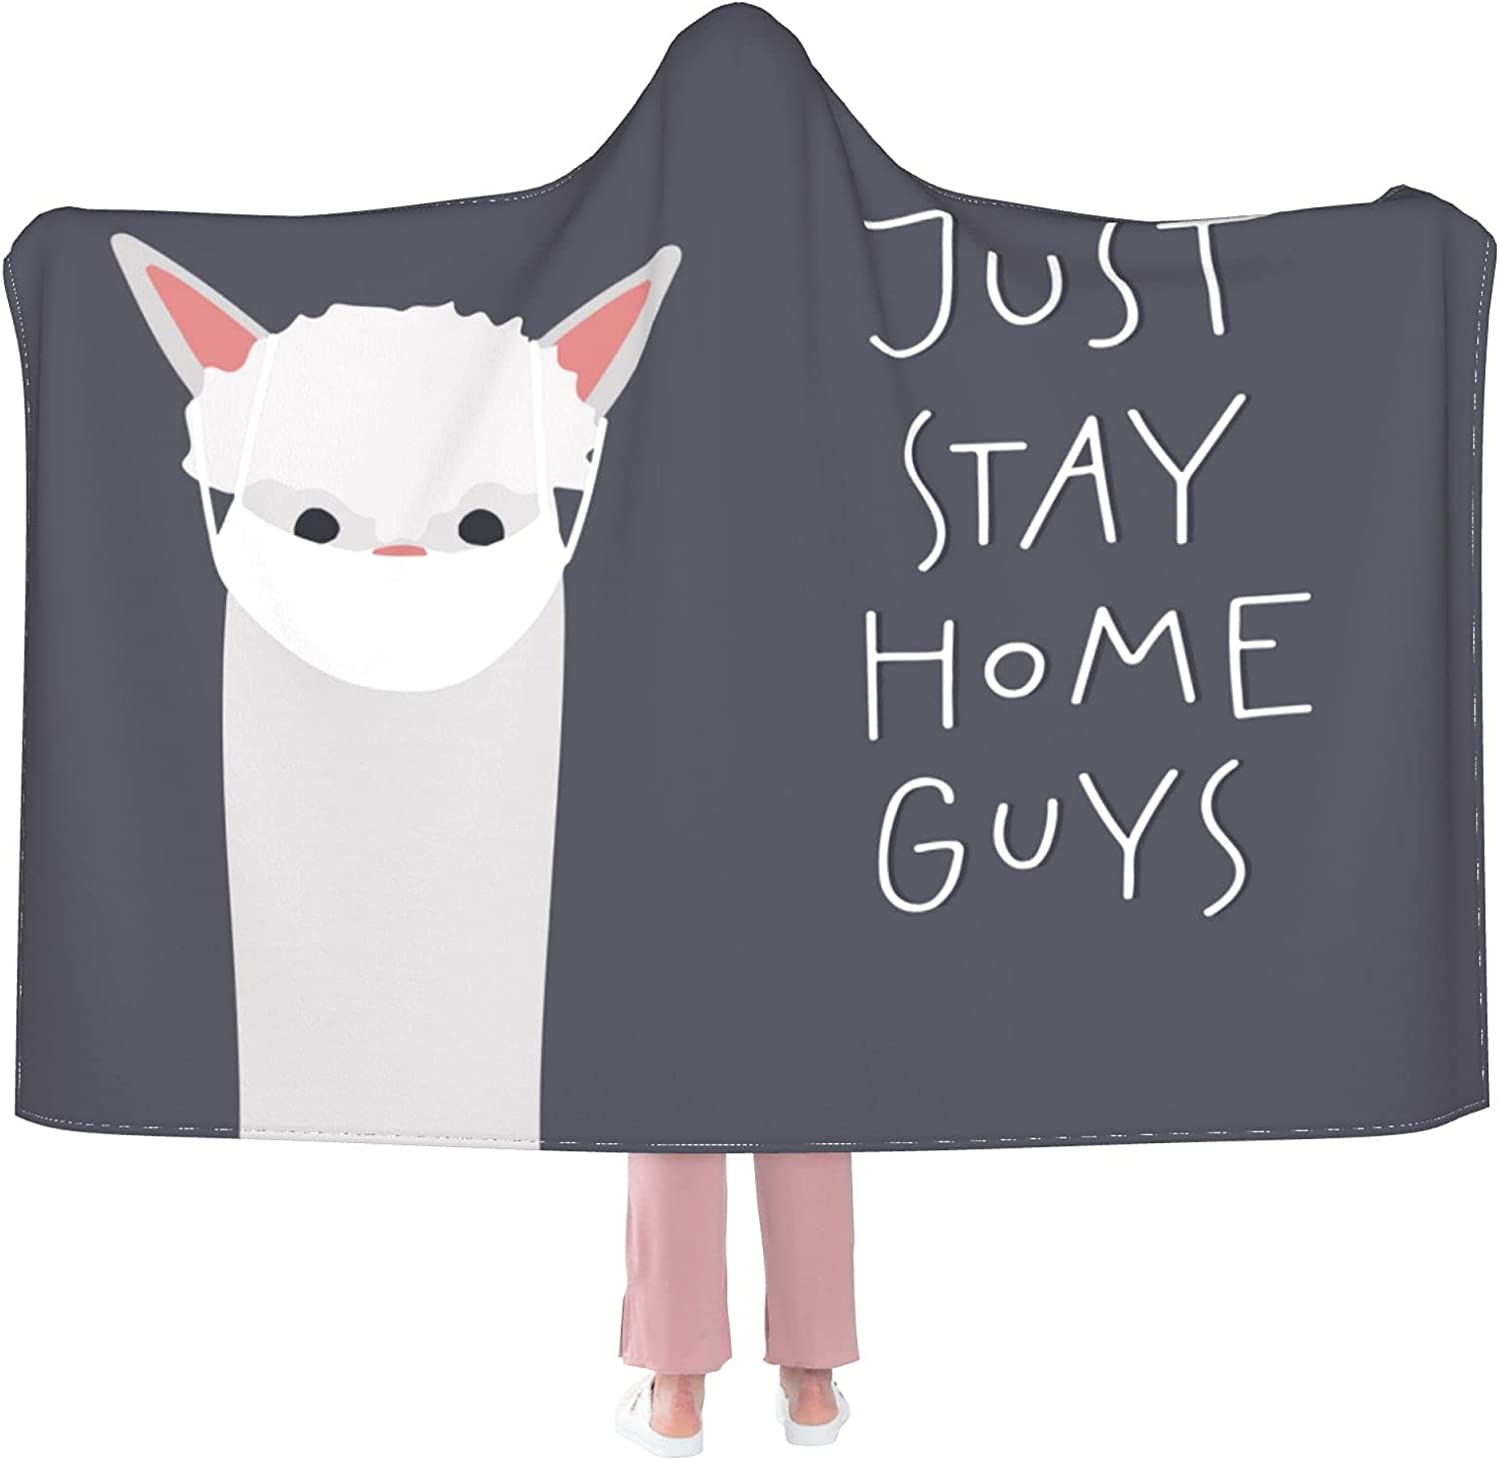 Stay wholesale Home Alpaca Llama Wearable Hooded Flannel Blanket New mail order